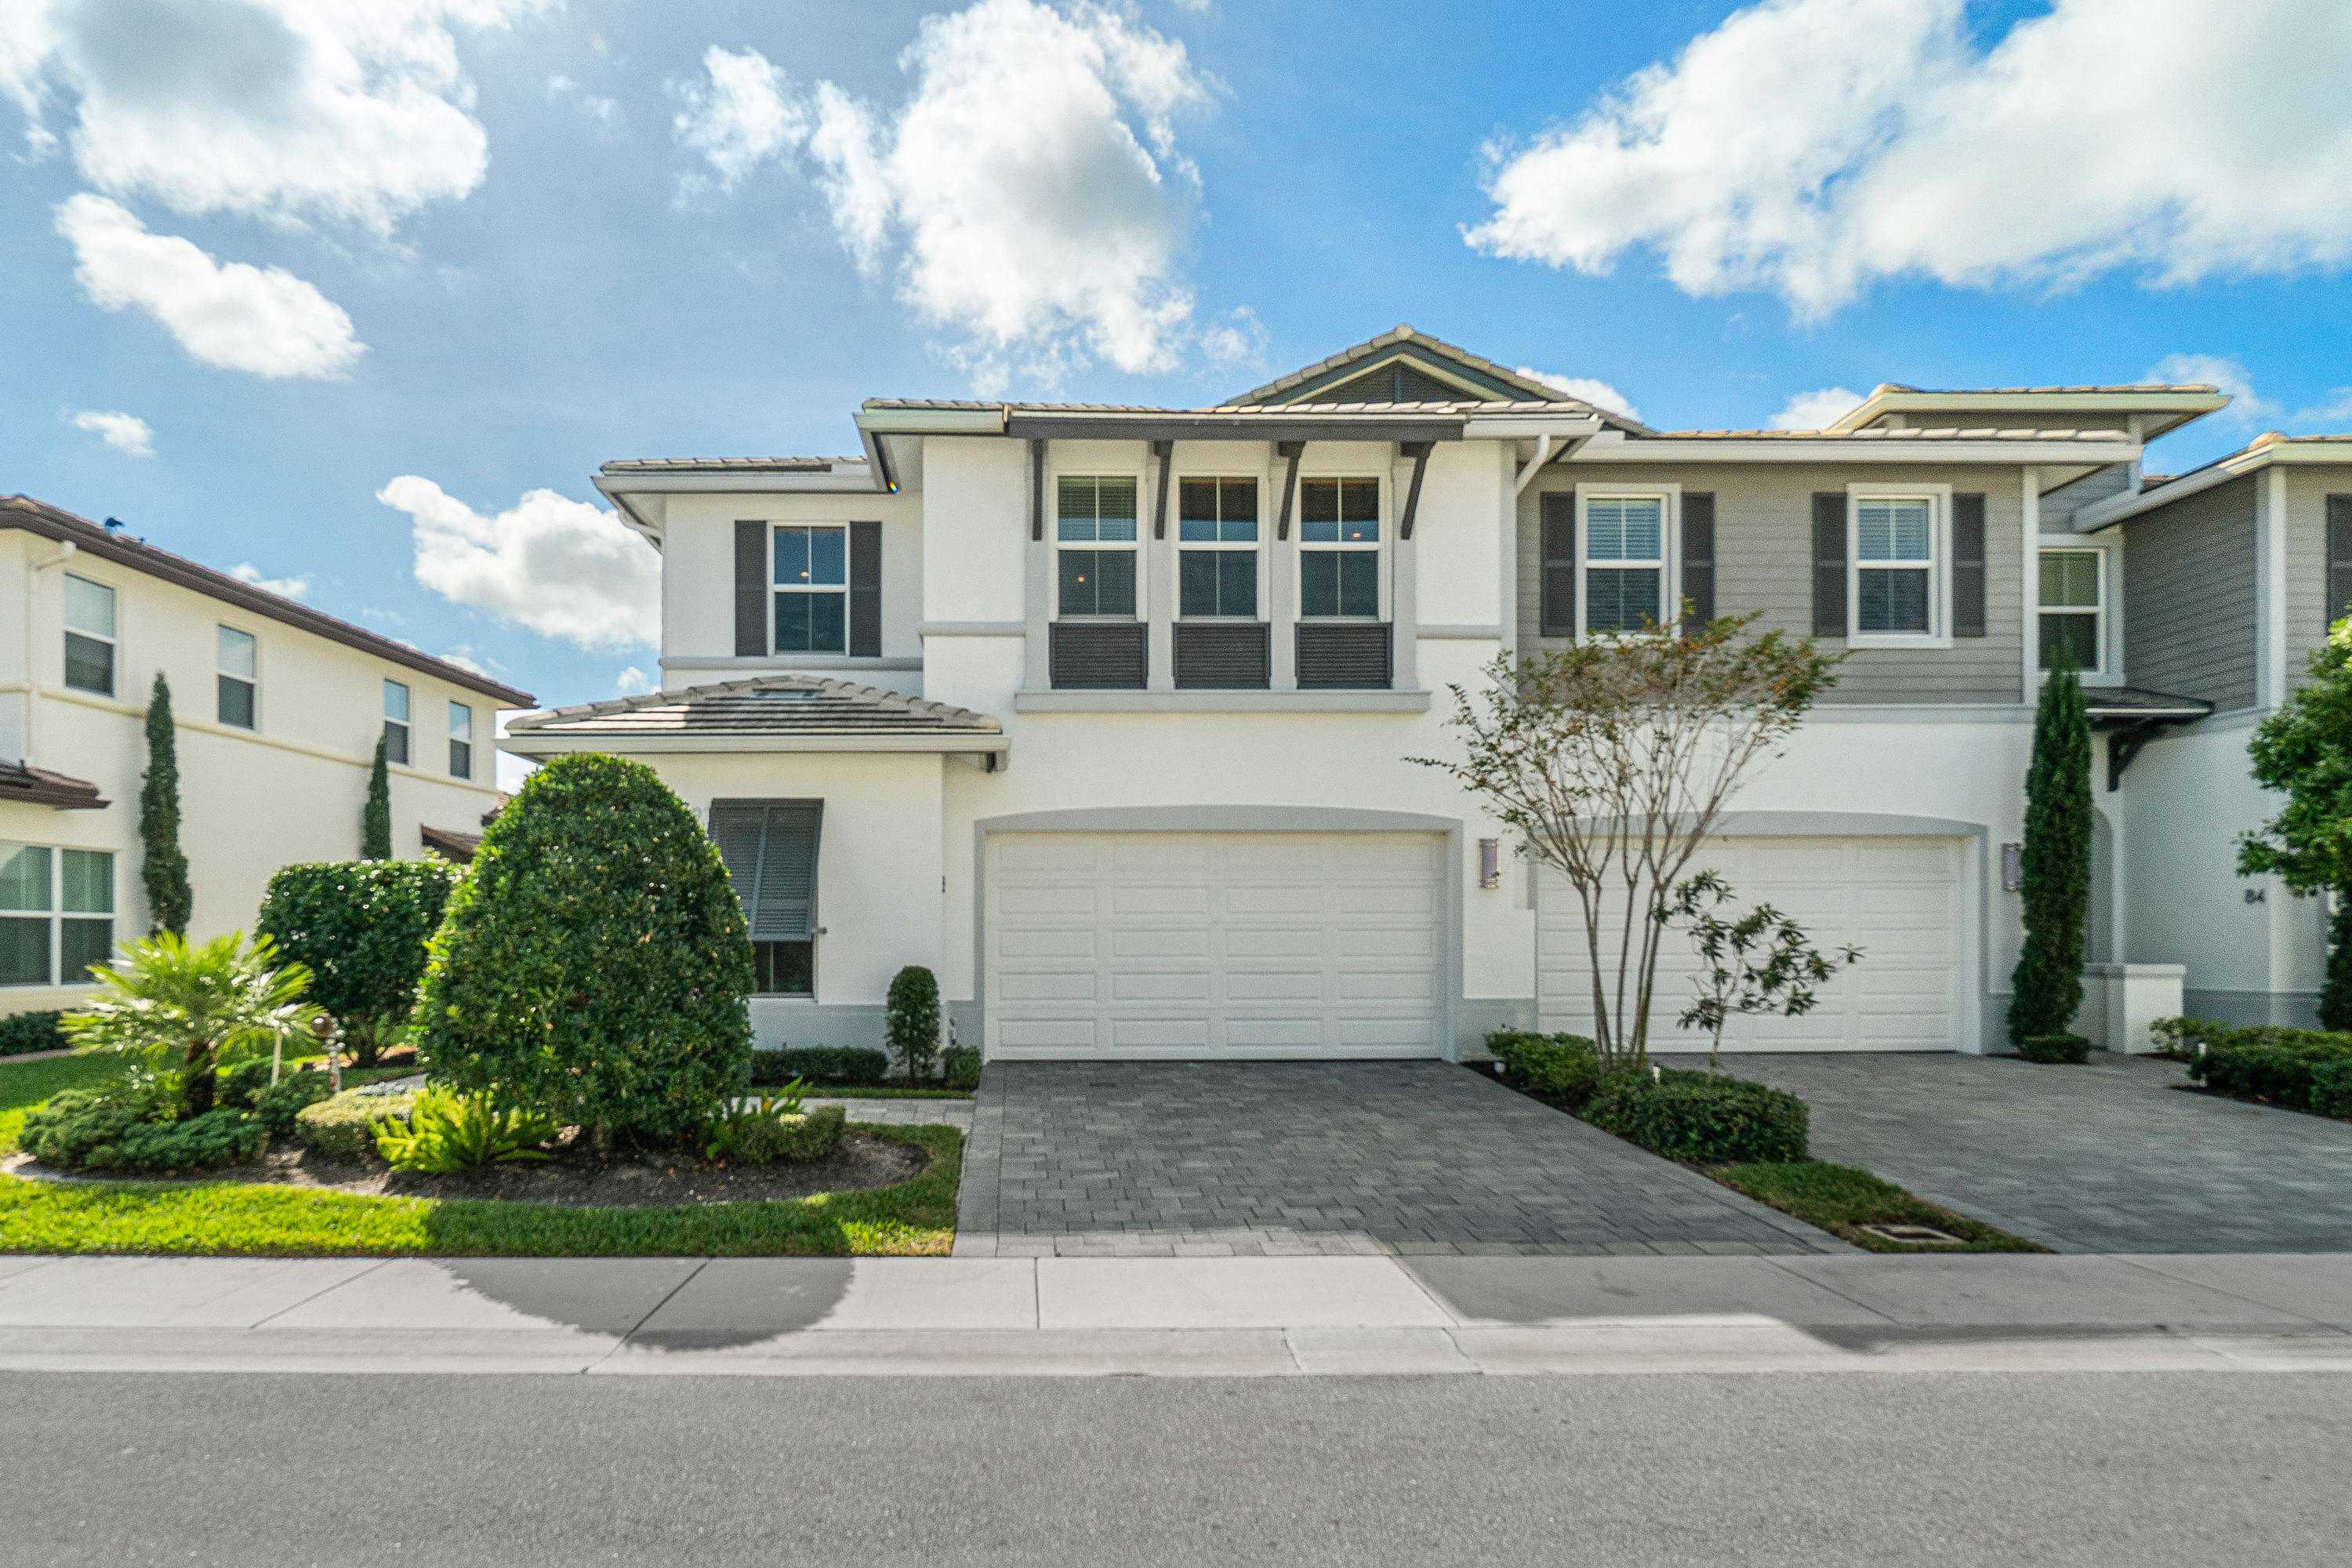 Photo of 22991 Clear Echo Drive #82, Boca Raton, FL 33433